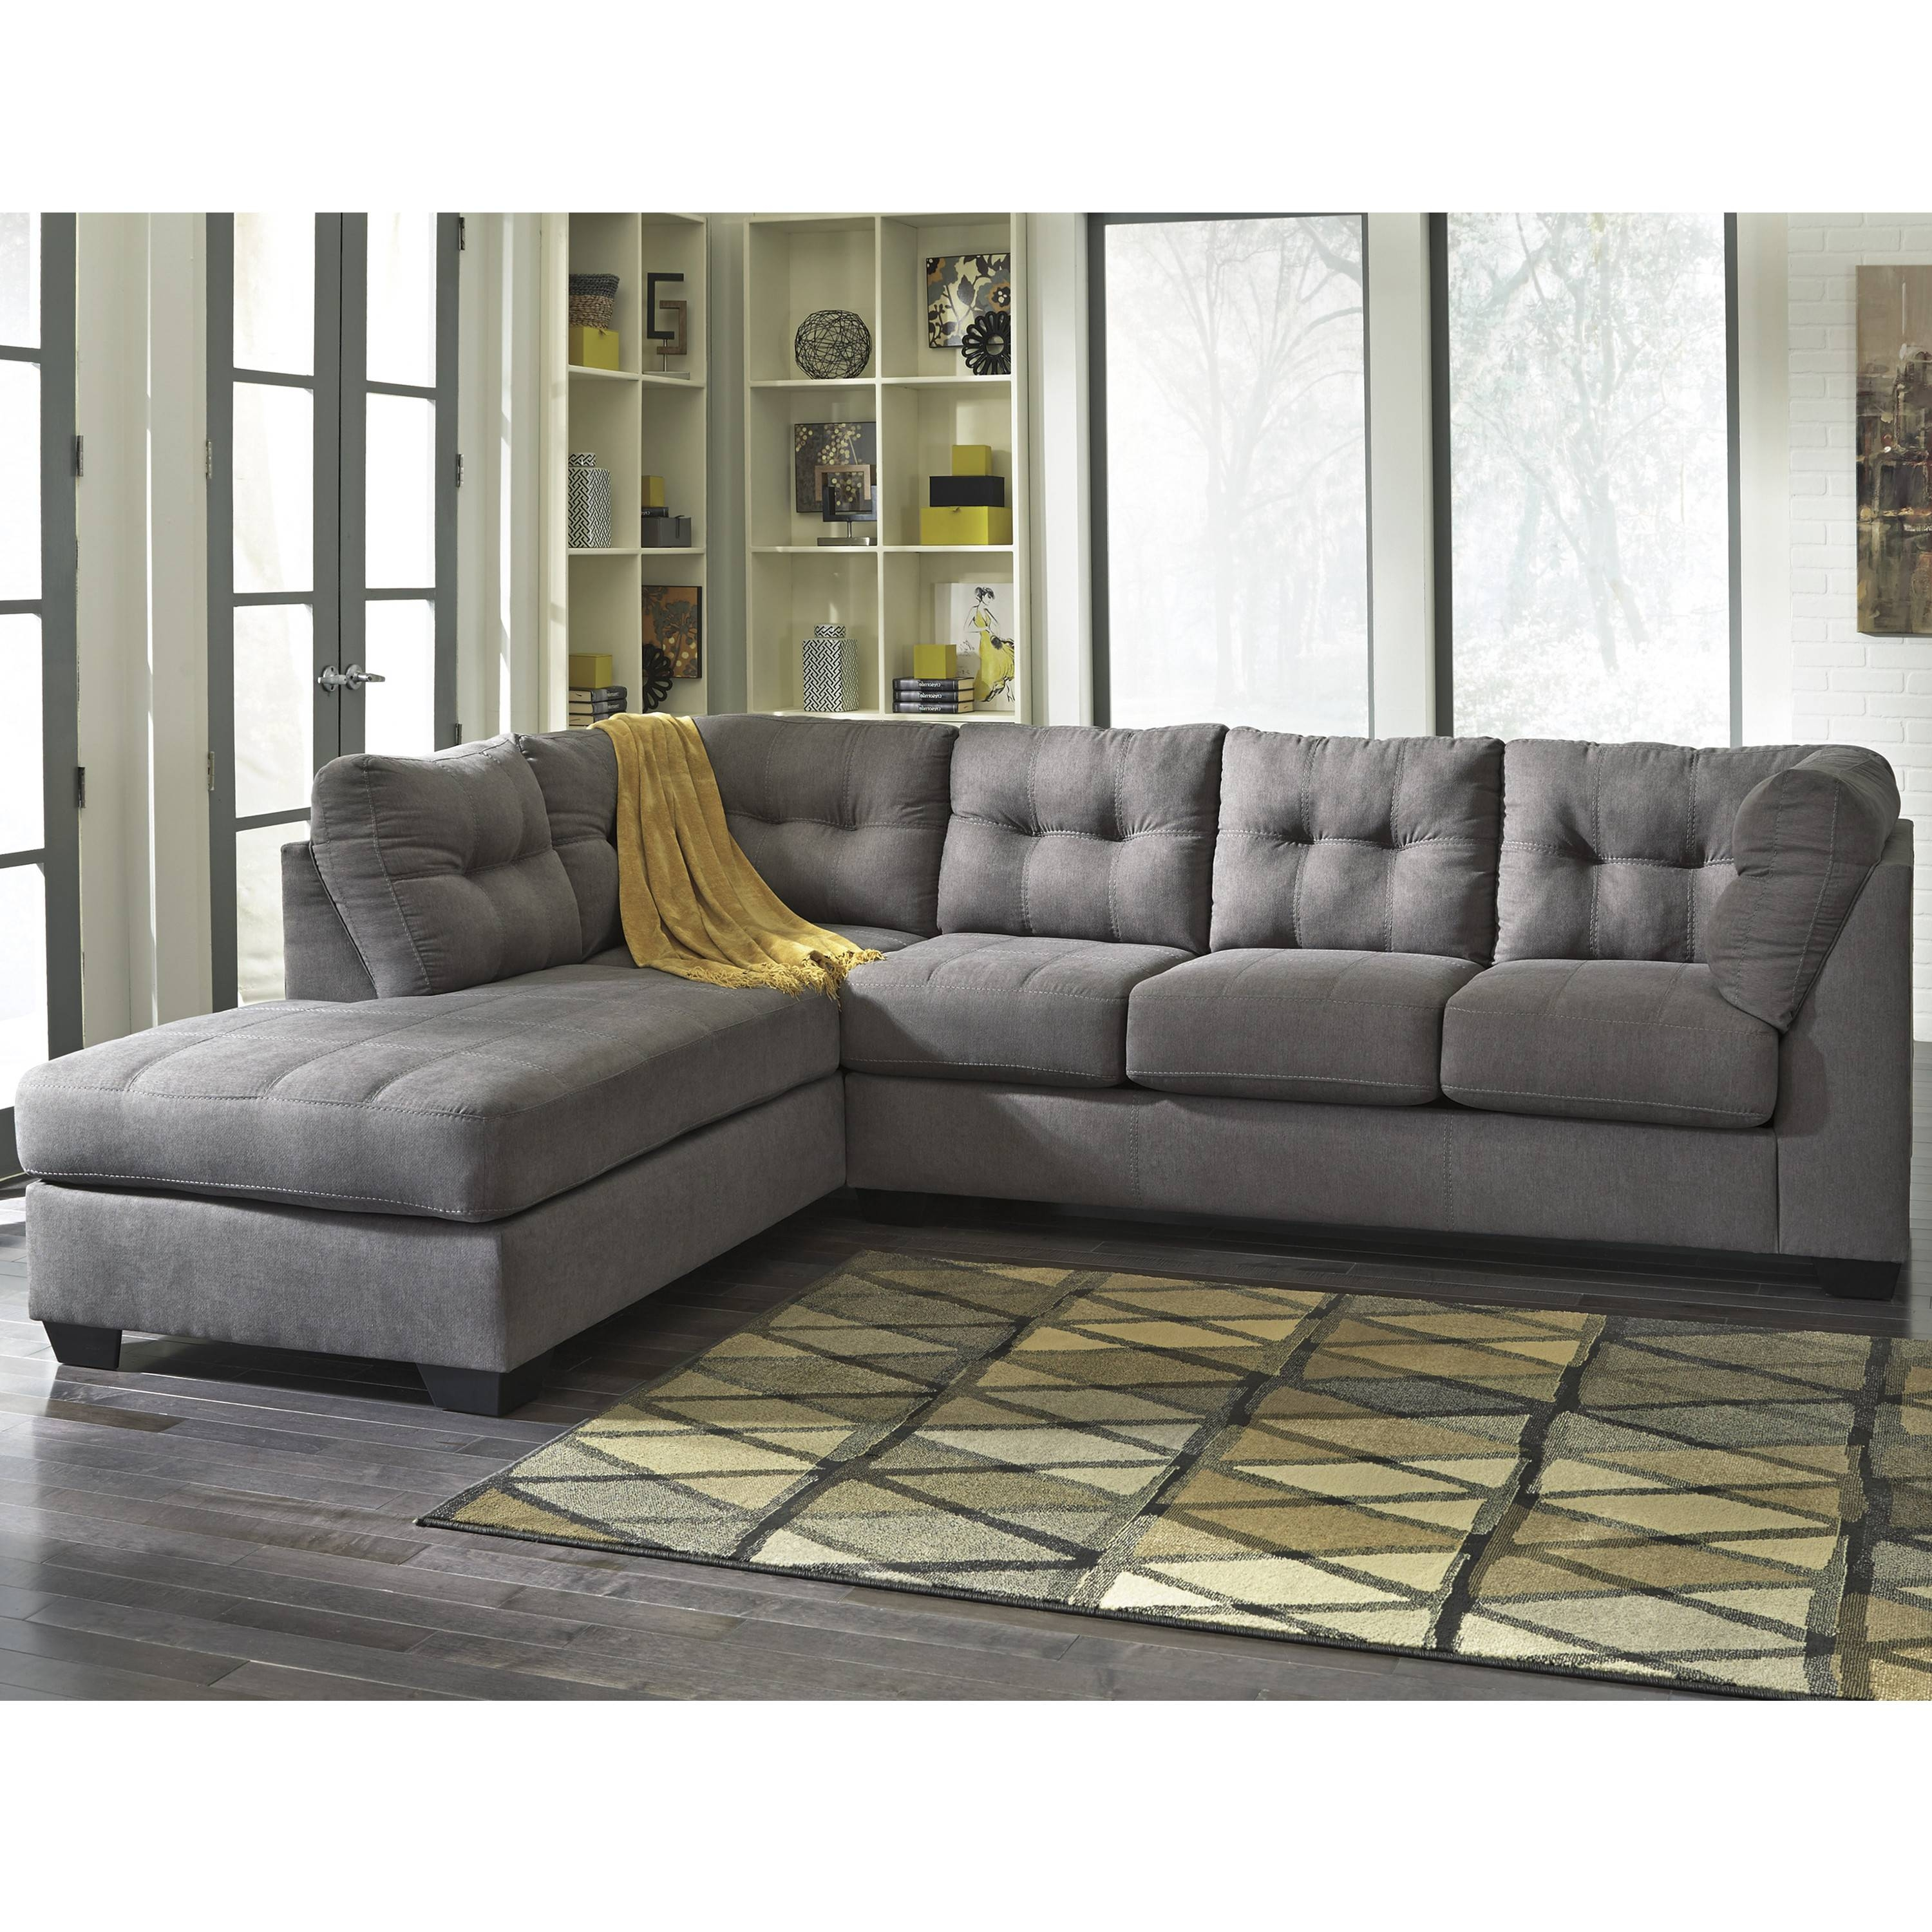 Latest Trend Of Microsuede Sectional Sofas 63 For High End inside High End Sofa (Image 20 of 30)